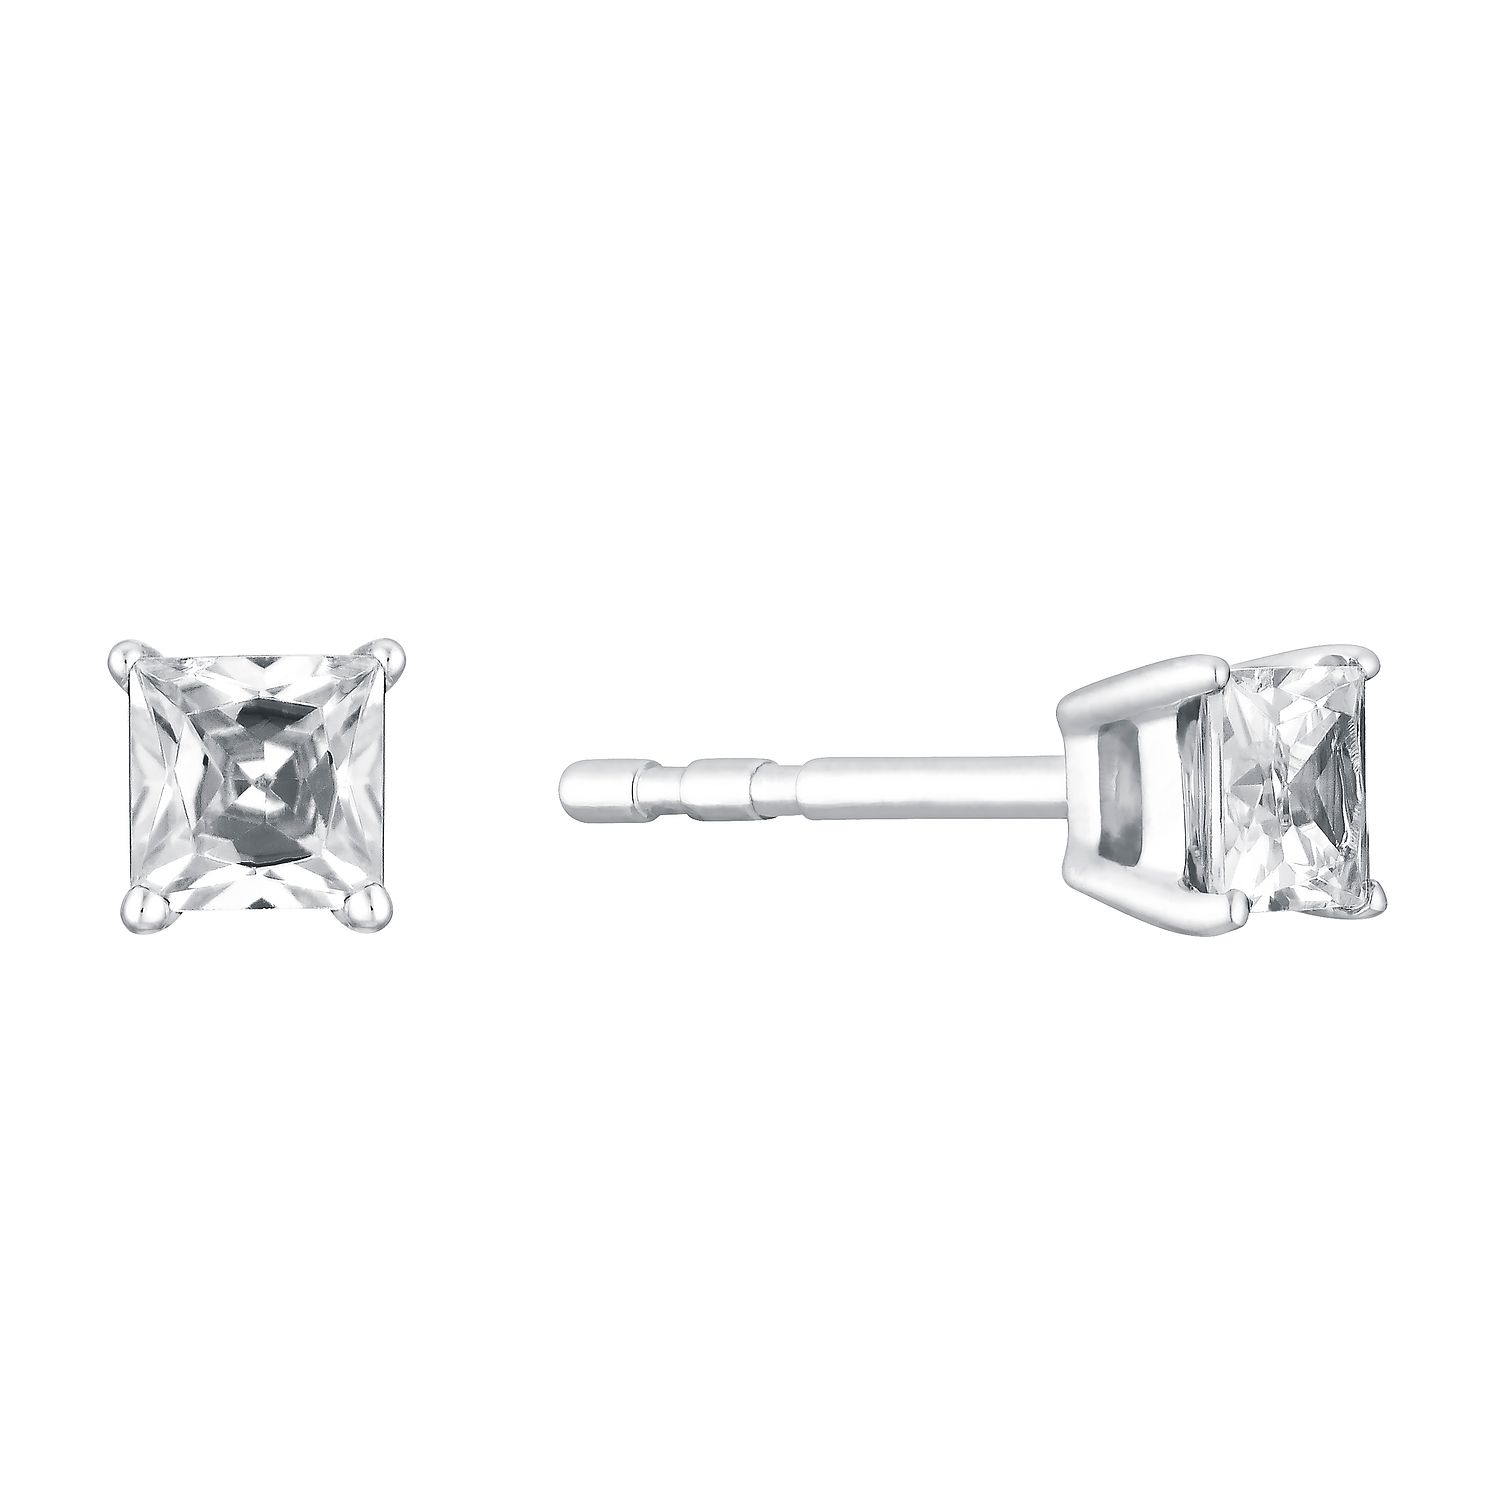 b pdp square a johnlewis earrings buya lewis garnet online rsp at main diamond davis john gold com stud